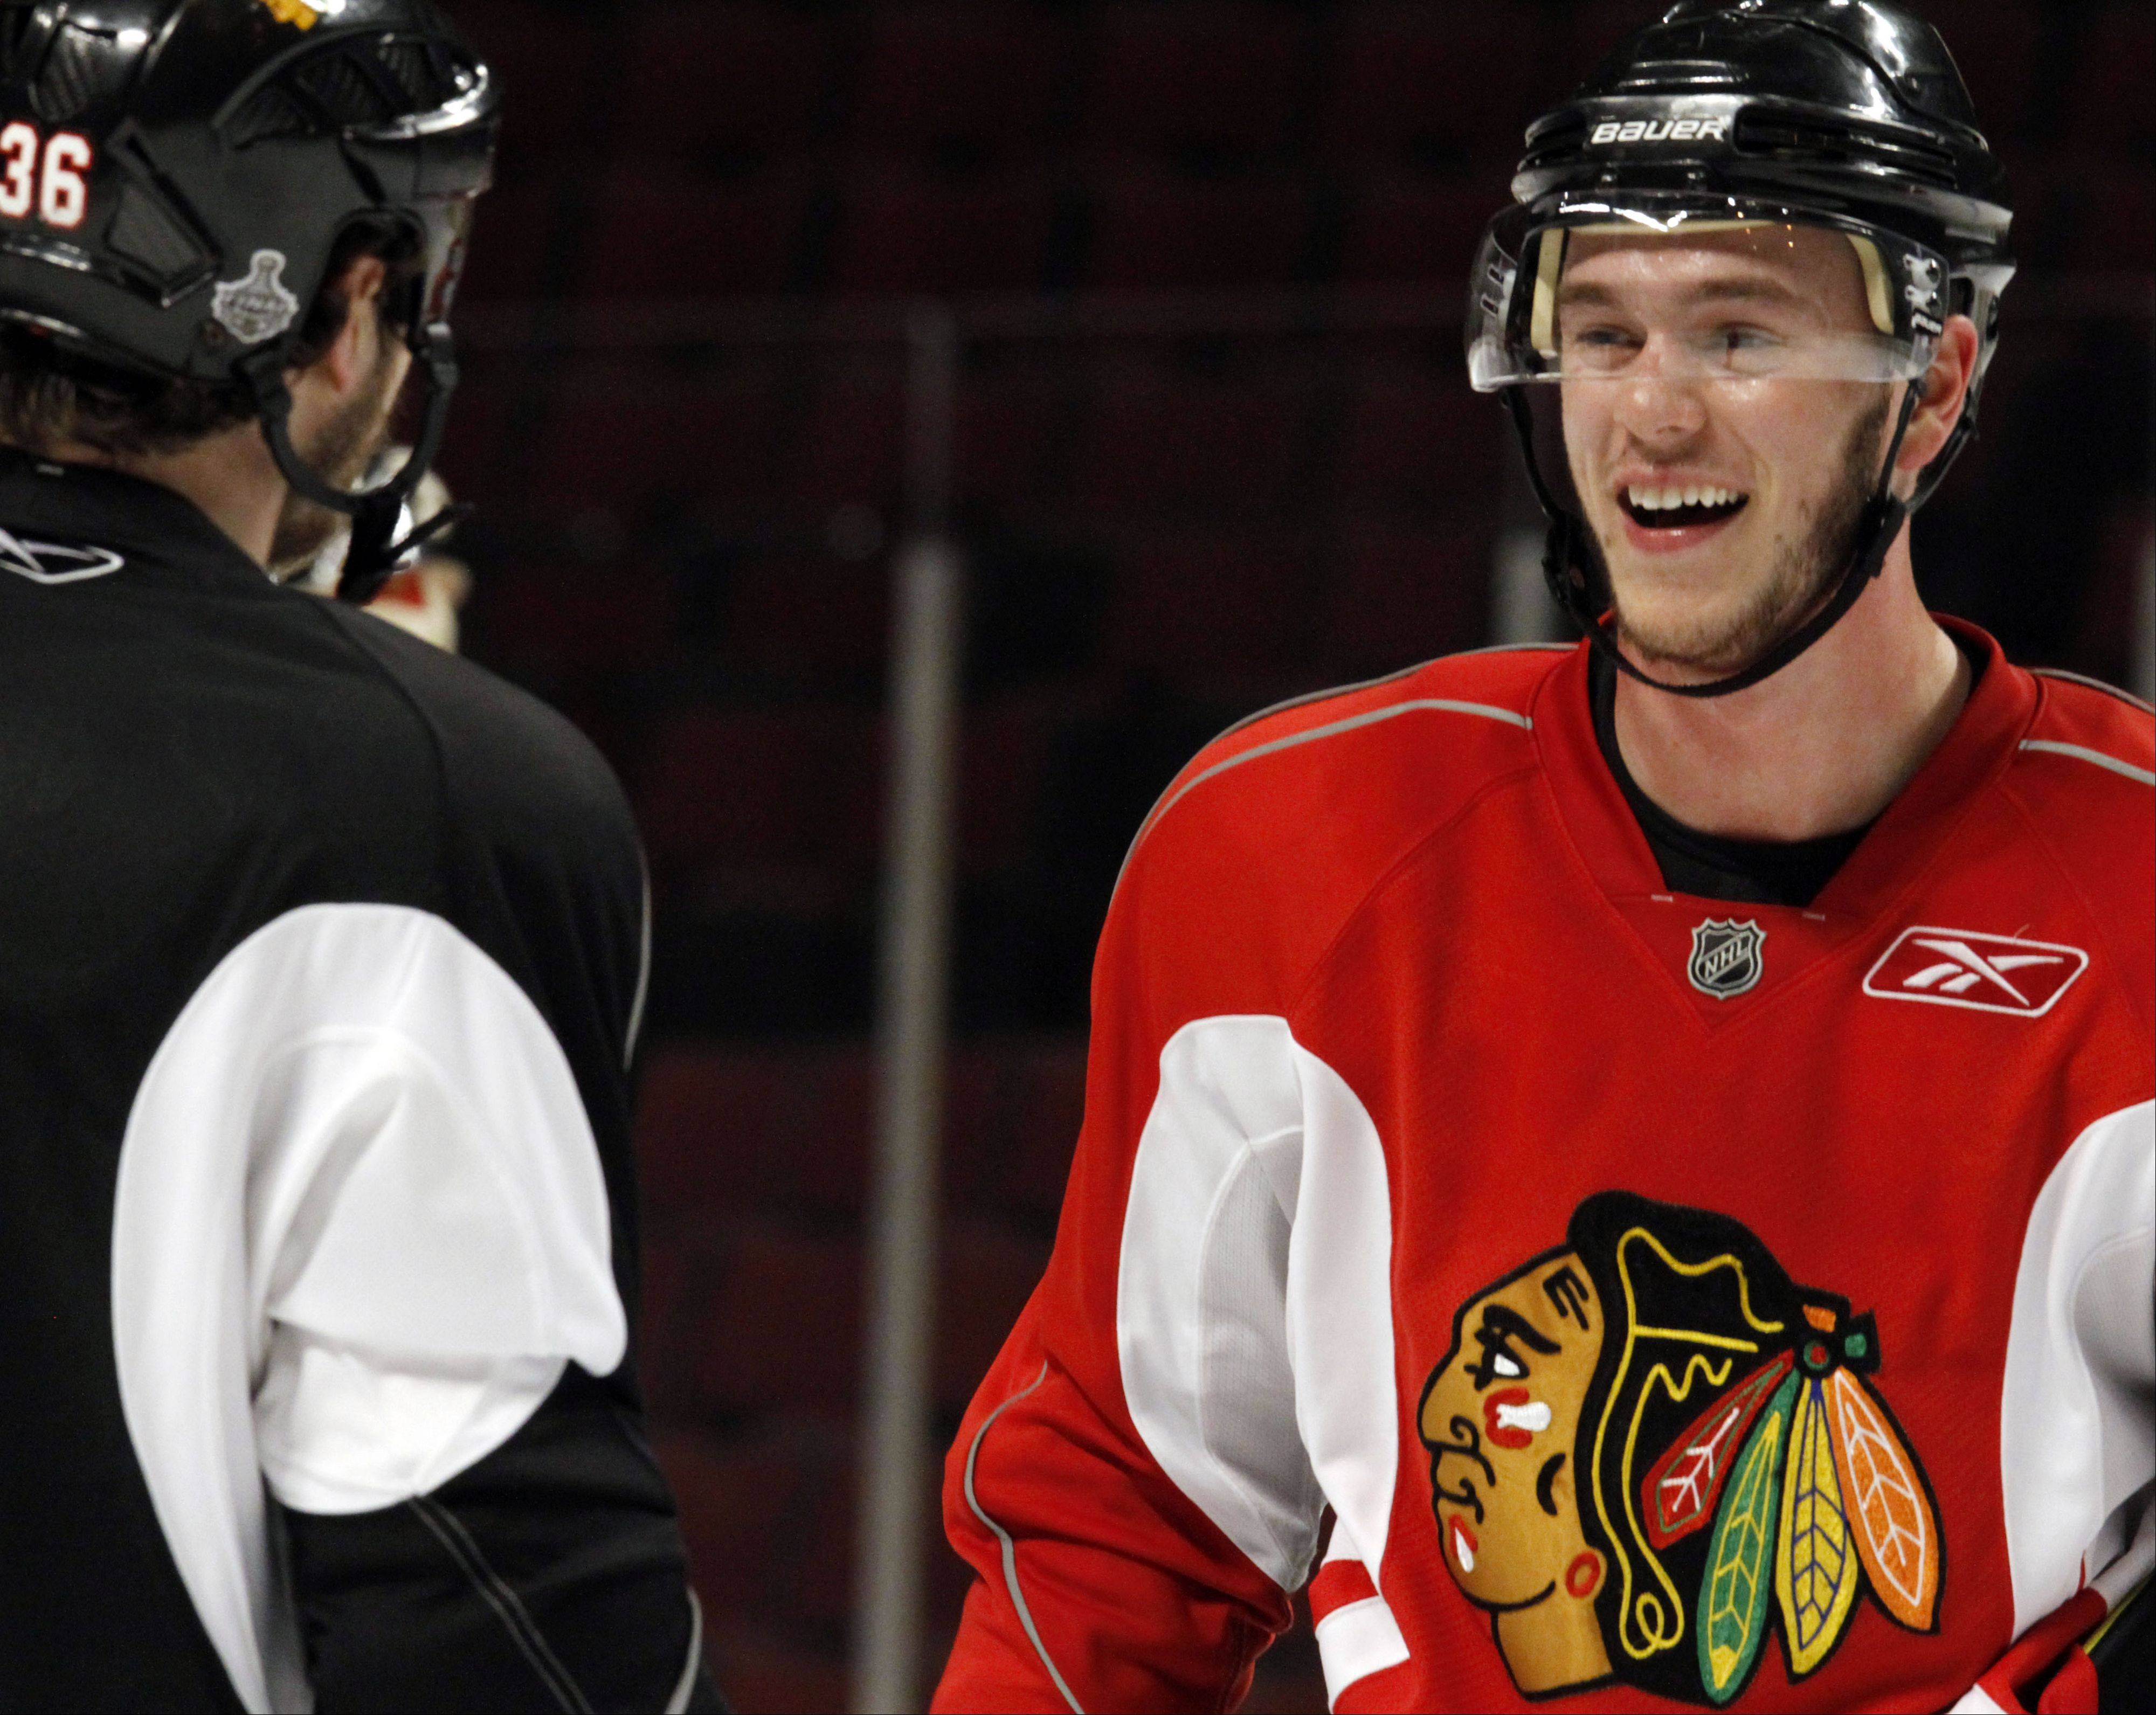 The Blackhawks� Jonathan Toews says there is work to be done to win back those NHL fans bitter over the lockout.